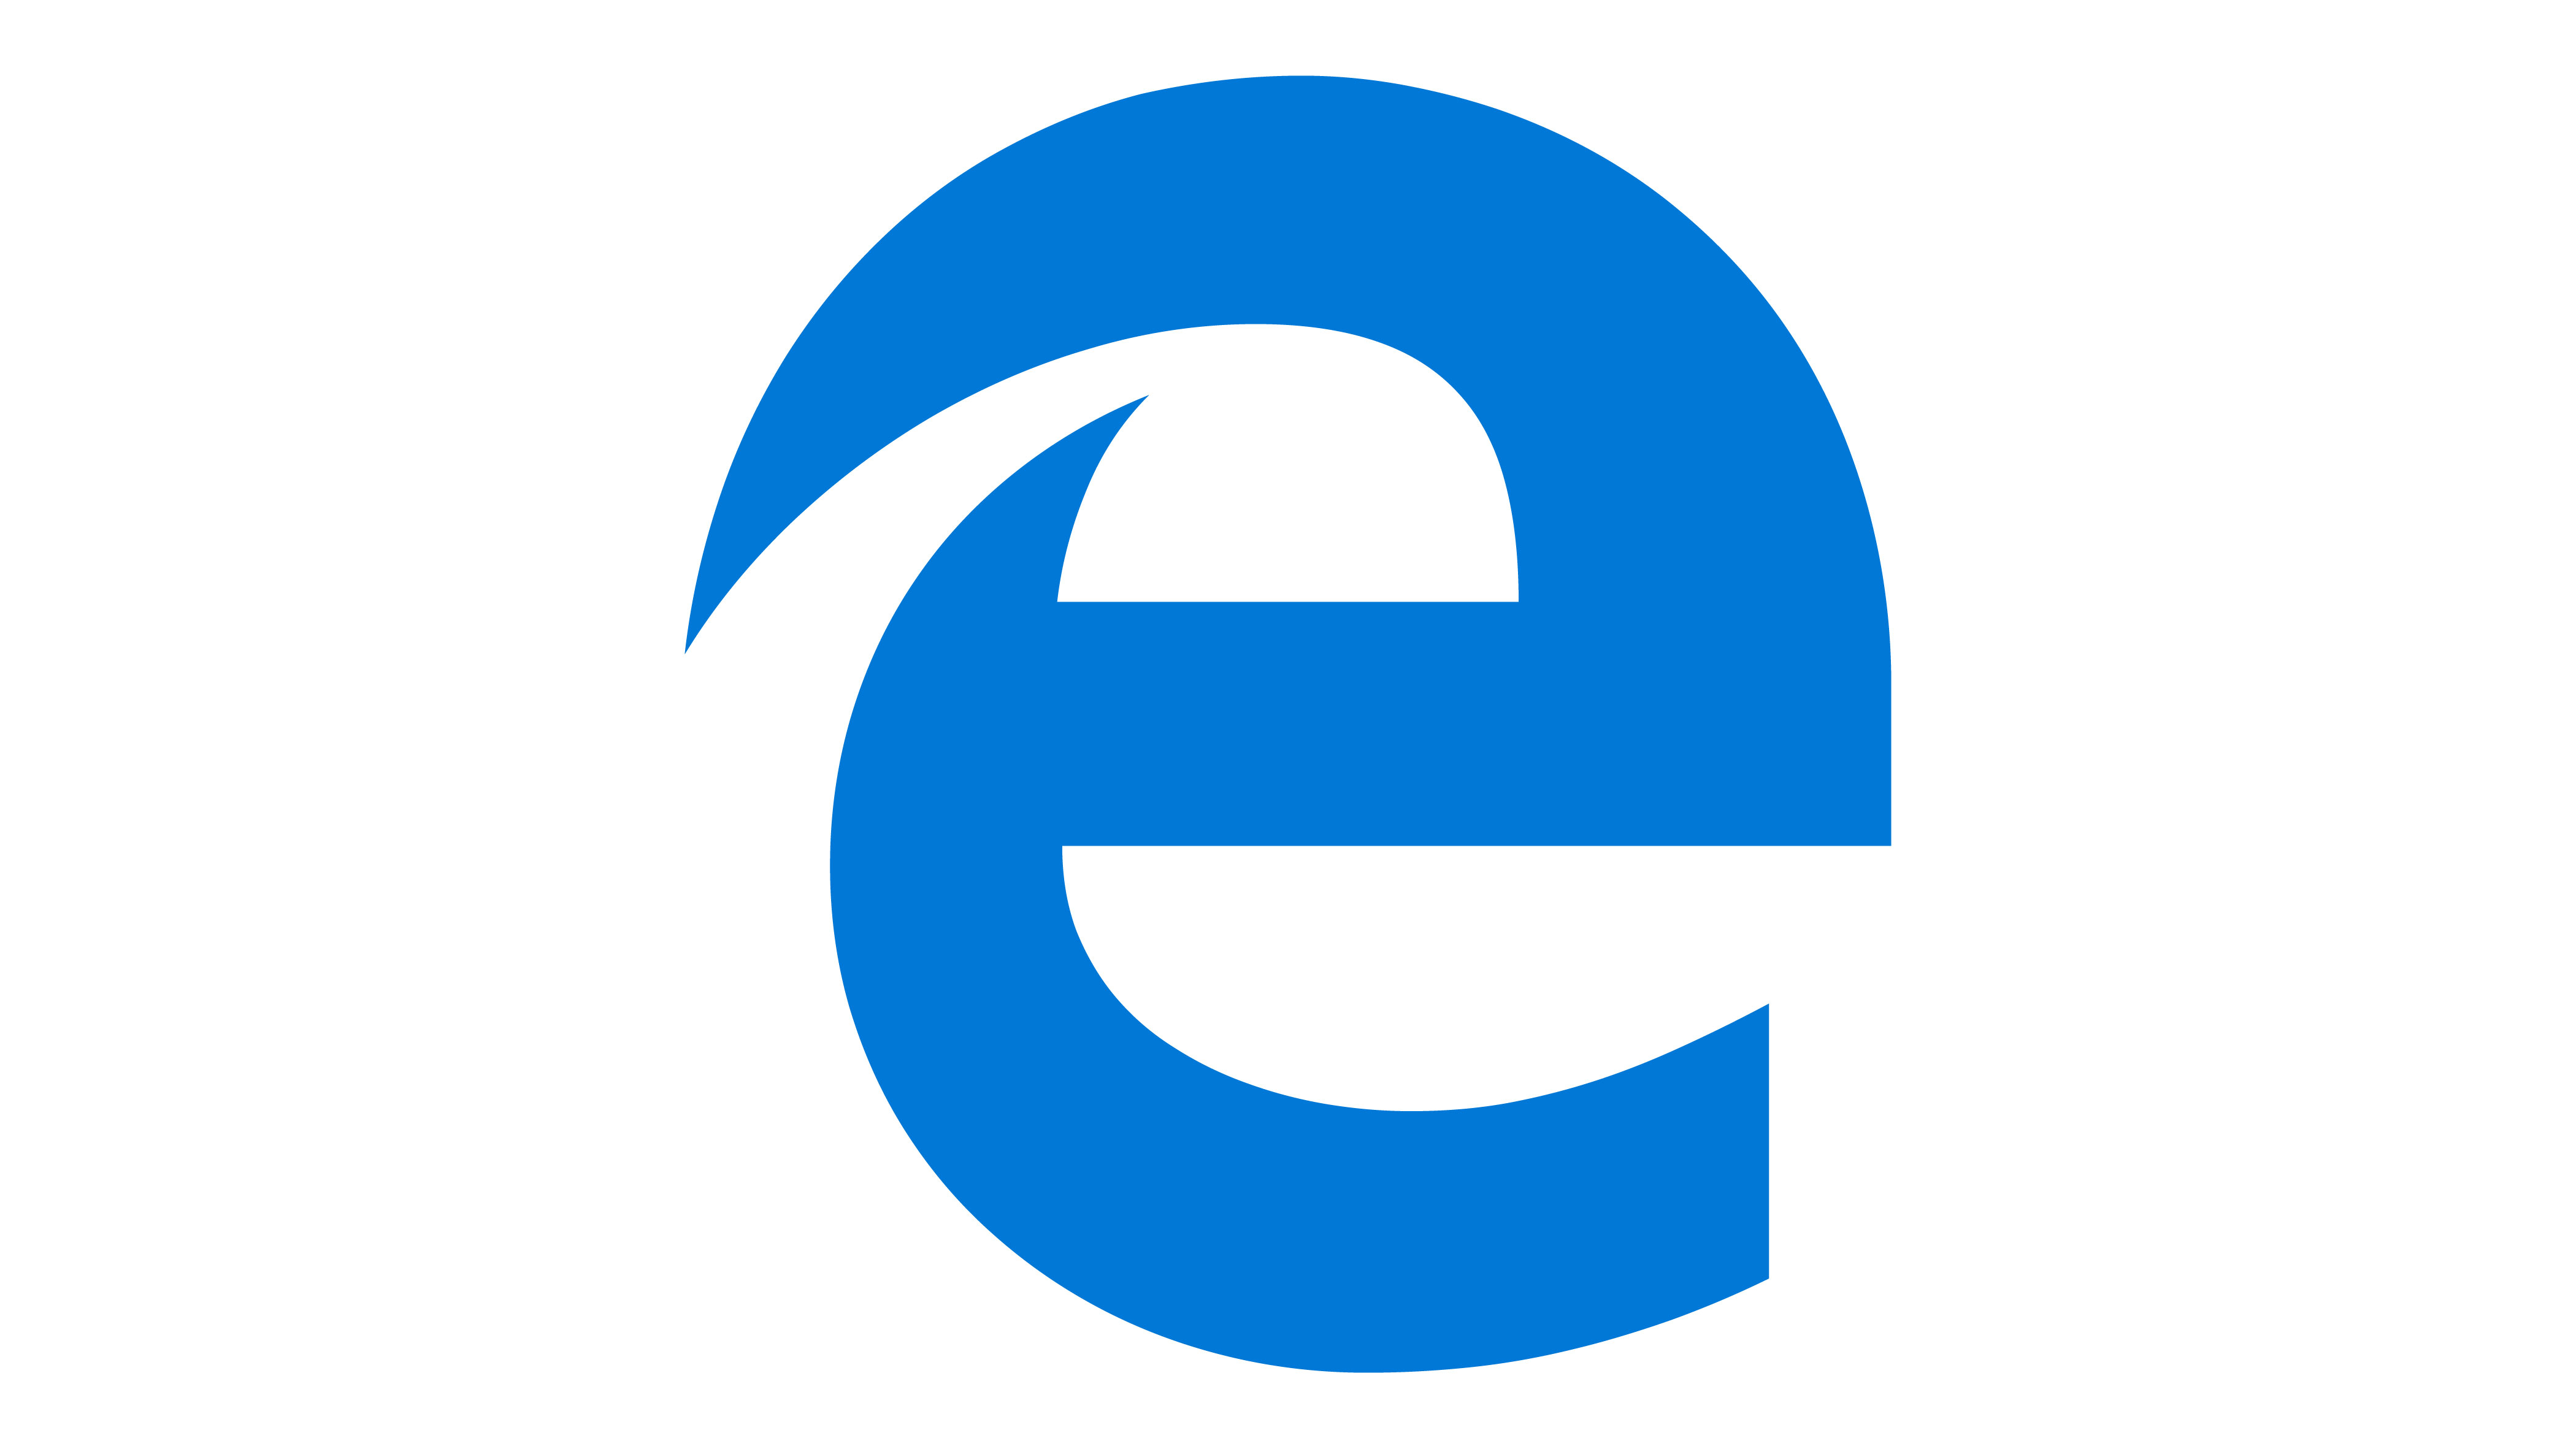 With Edge, Microsoft is modernizing its browser.